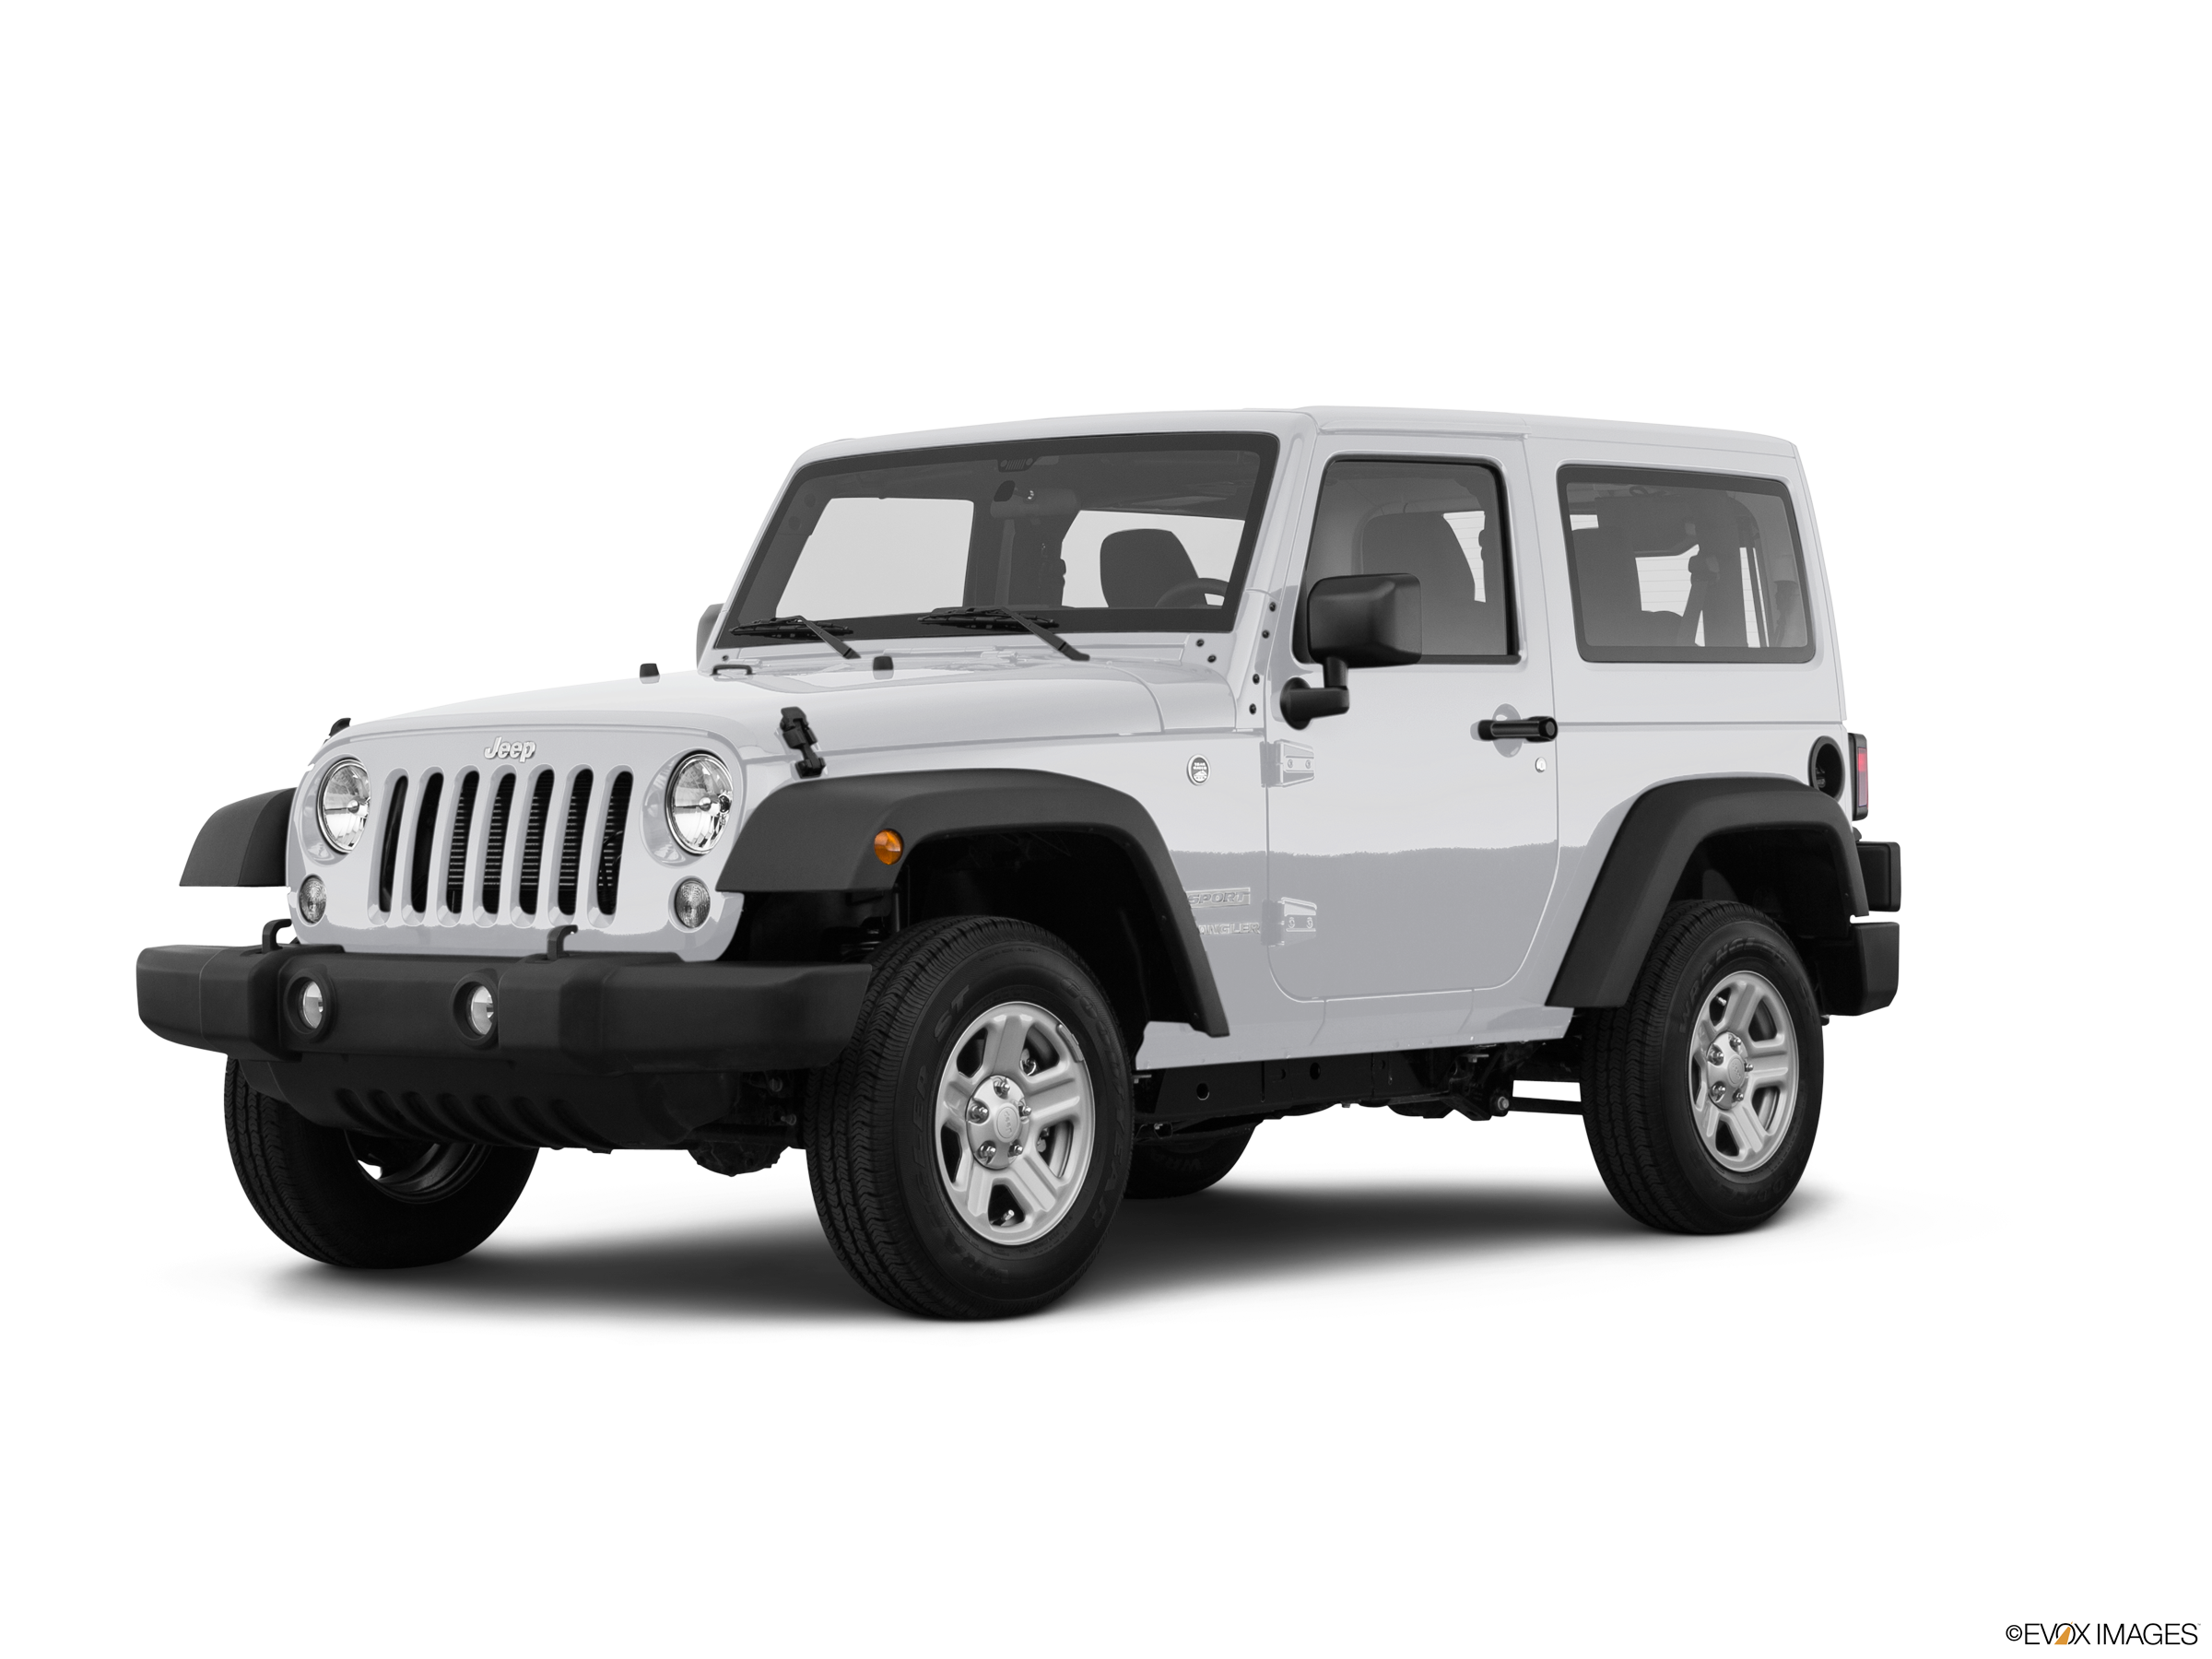 Most Popular SUVS of 2018 - 2018 Jeep Wrangler Unlimited